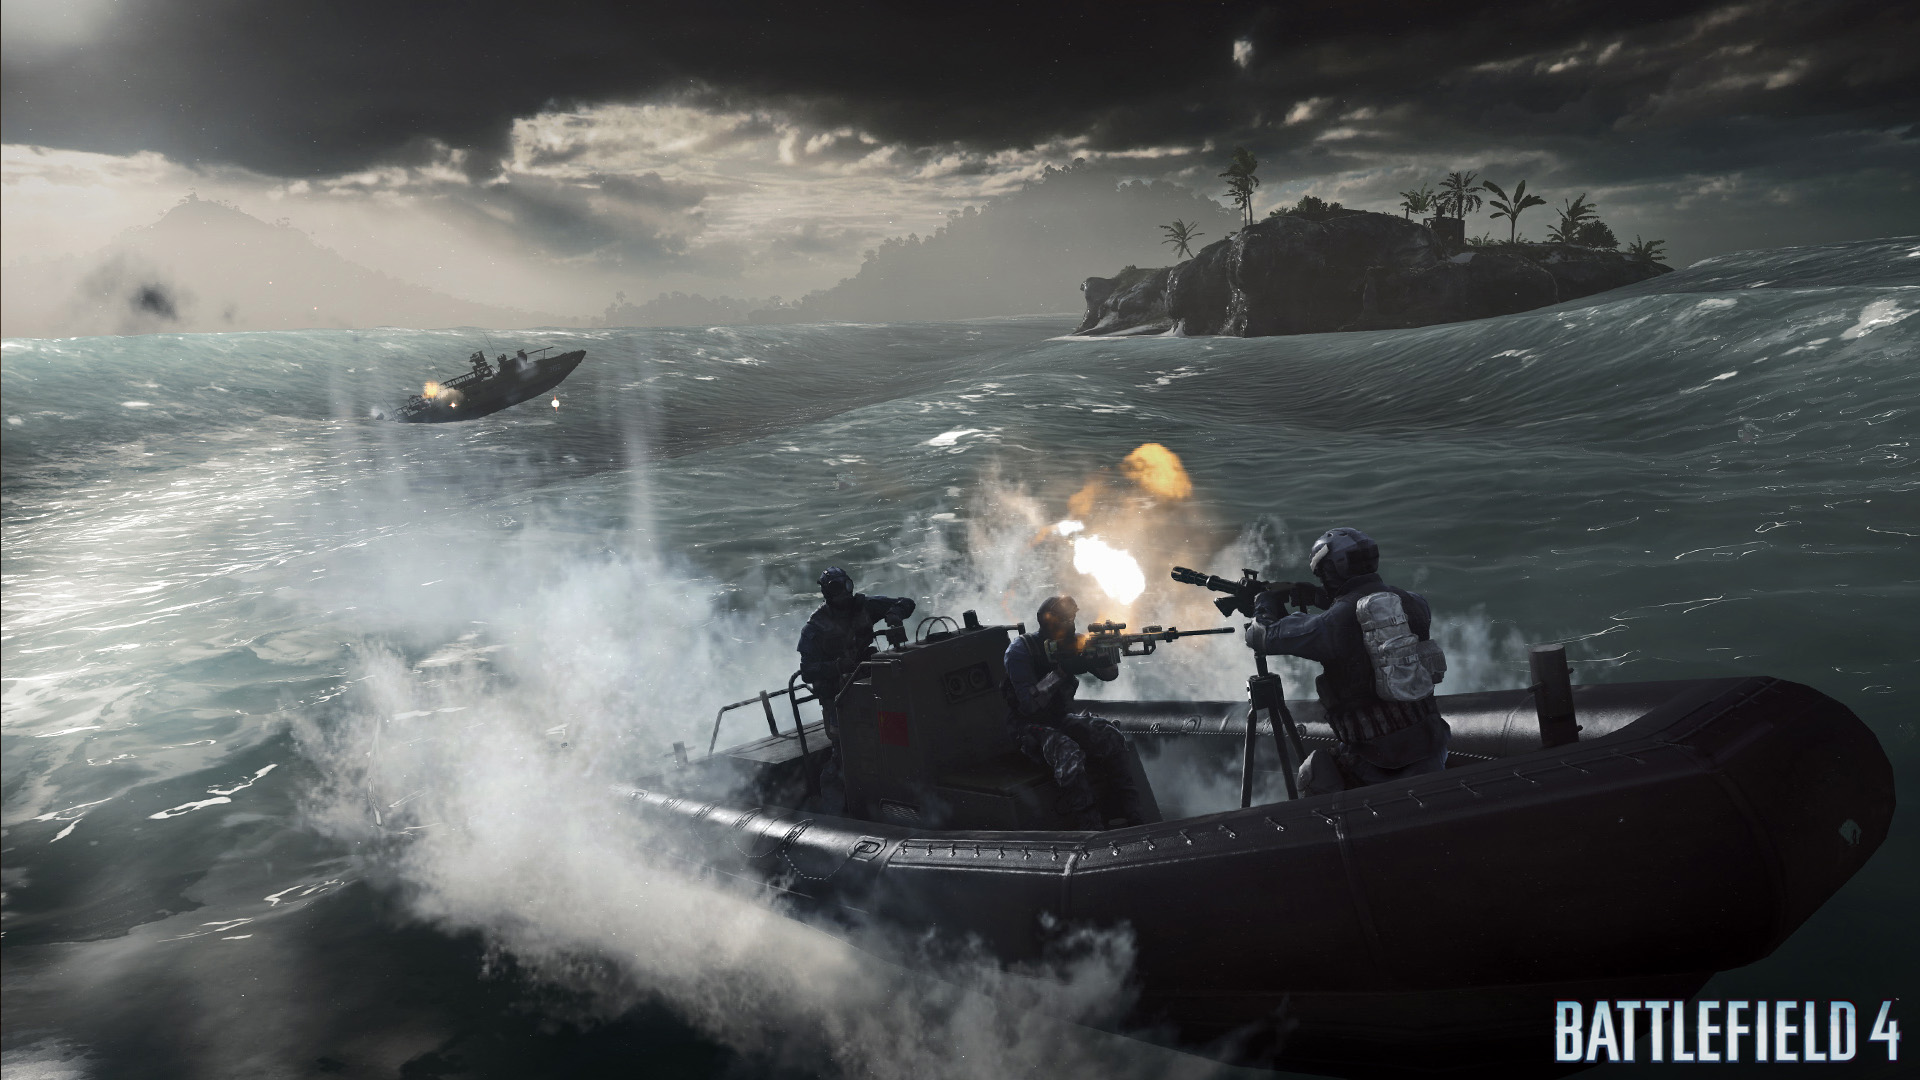 EA DICE postpones scheduled Battlefield 4 2XP event